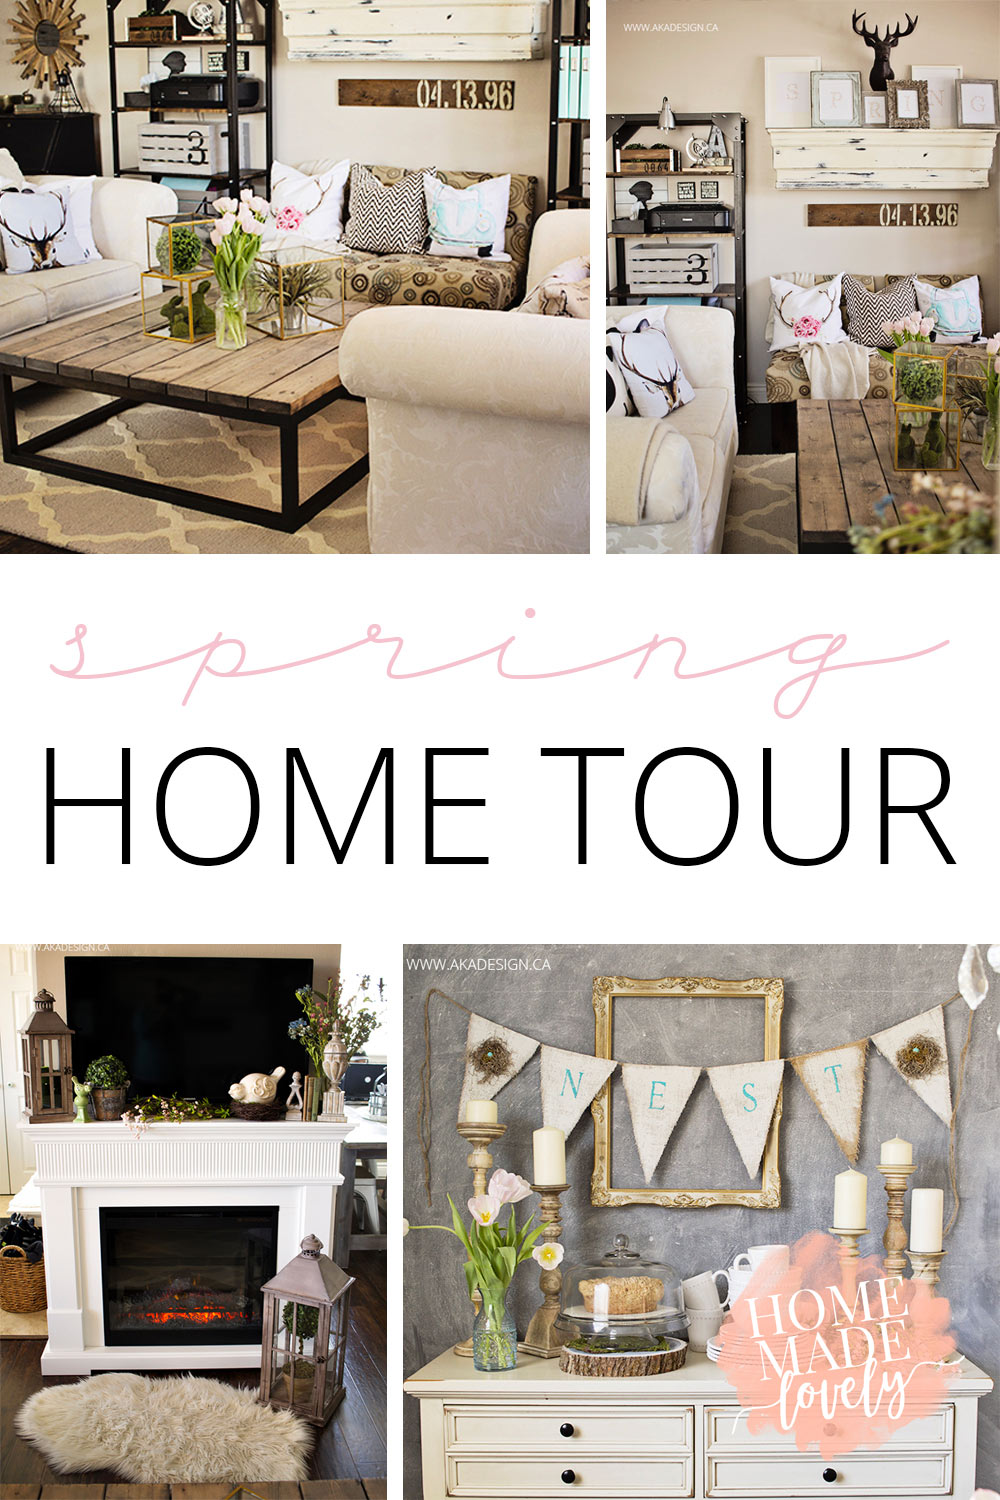 Around here we decorate for the seasons. It's our way of celebrating the everyday things. Today we're sharing our spring home tour!